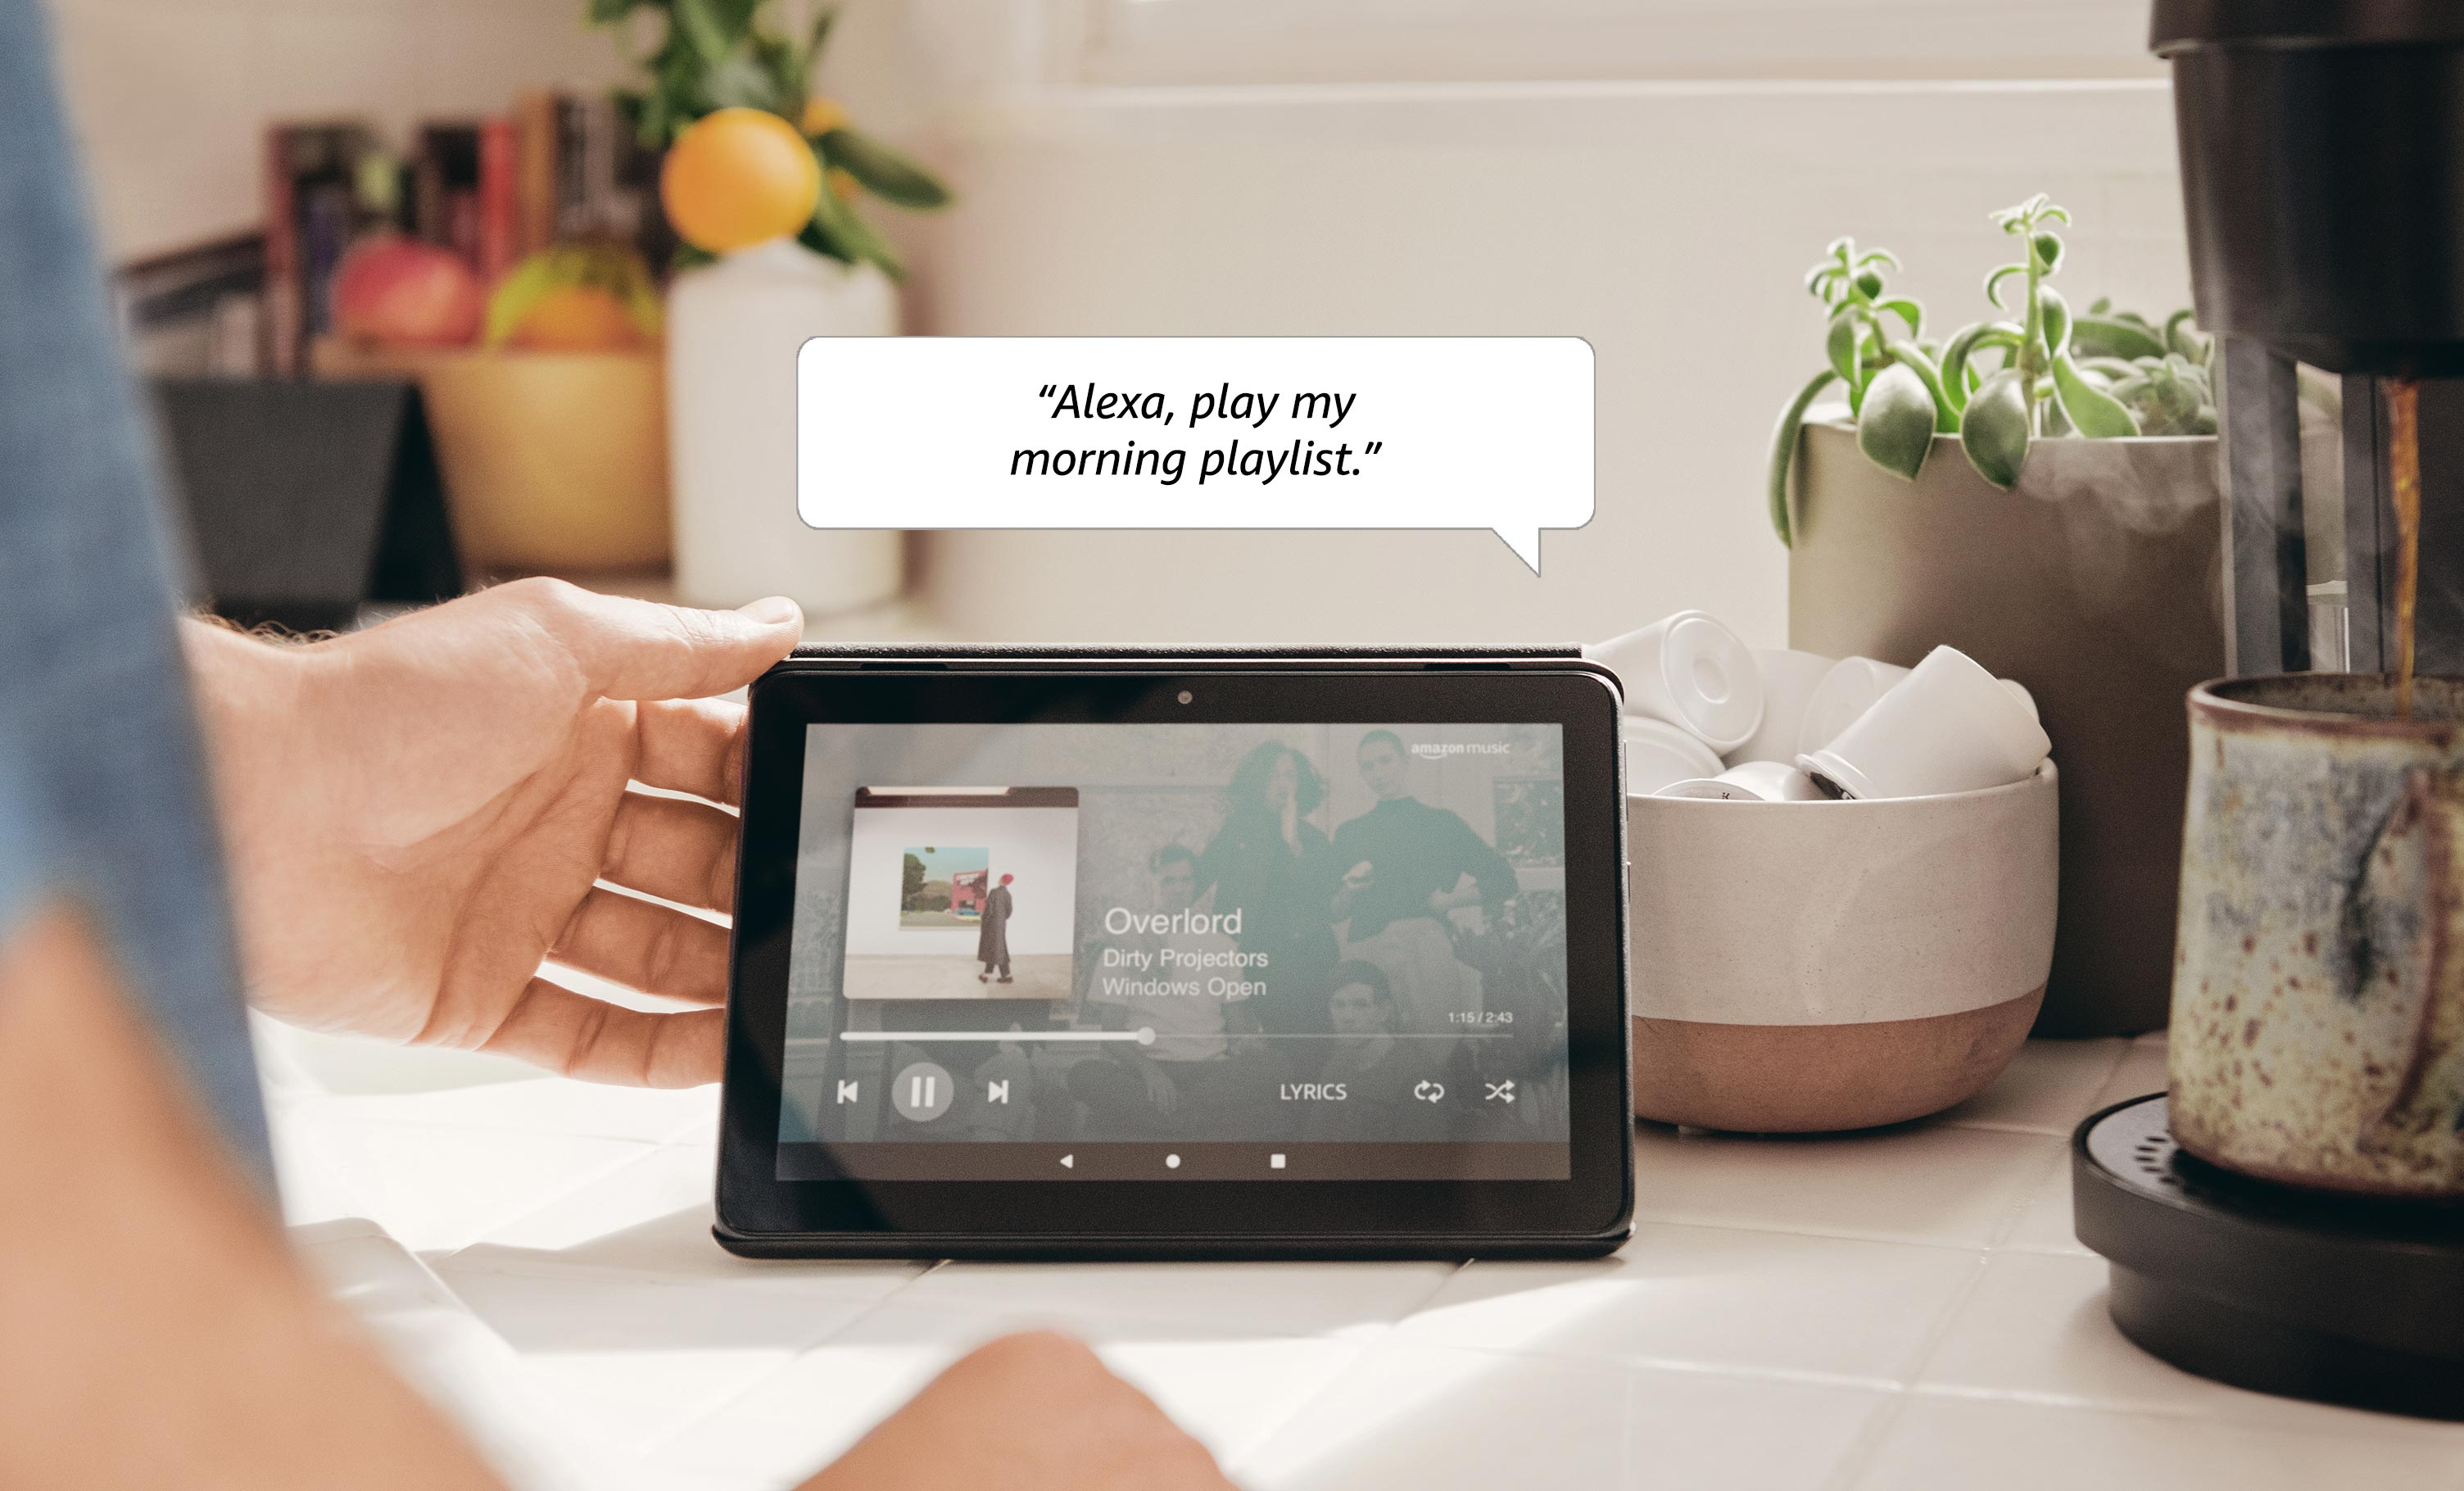 See and do more with Alexa